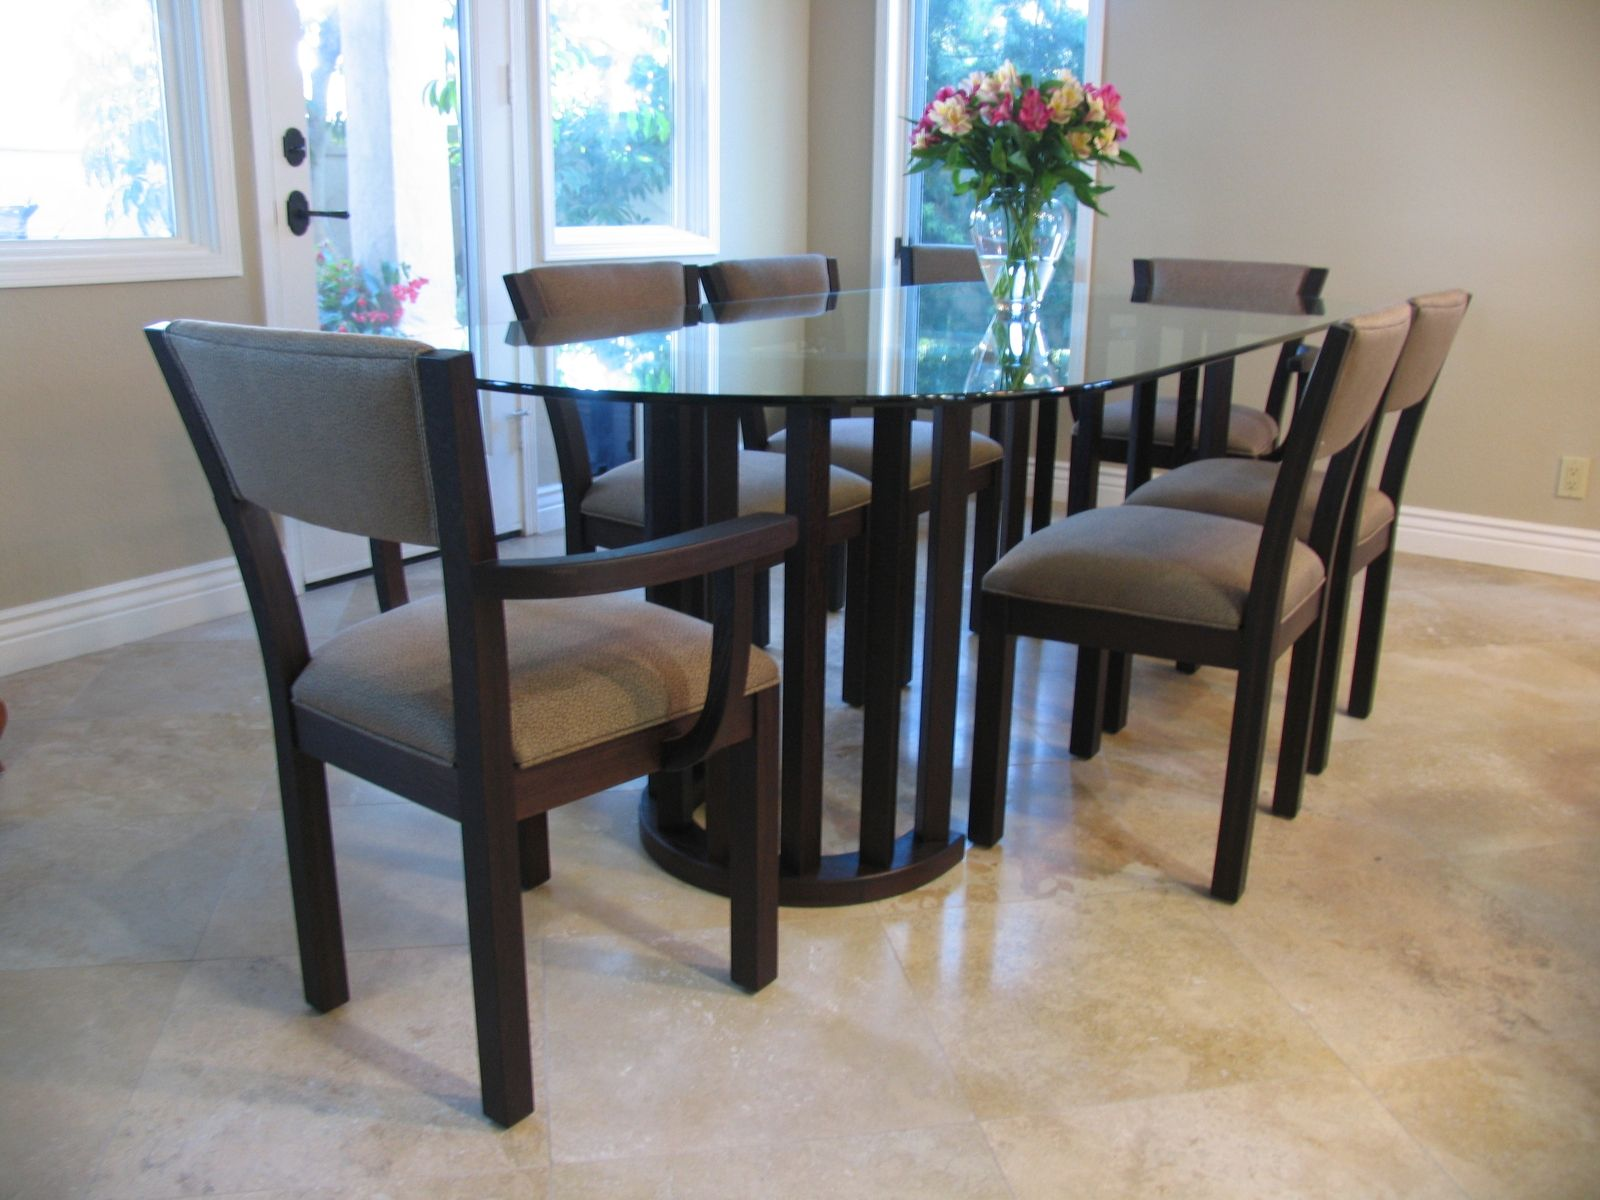 Custom Dining Chairs And Table by Del Cover Woodworking ...